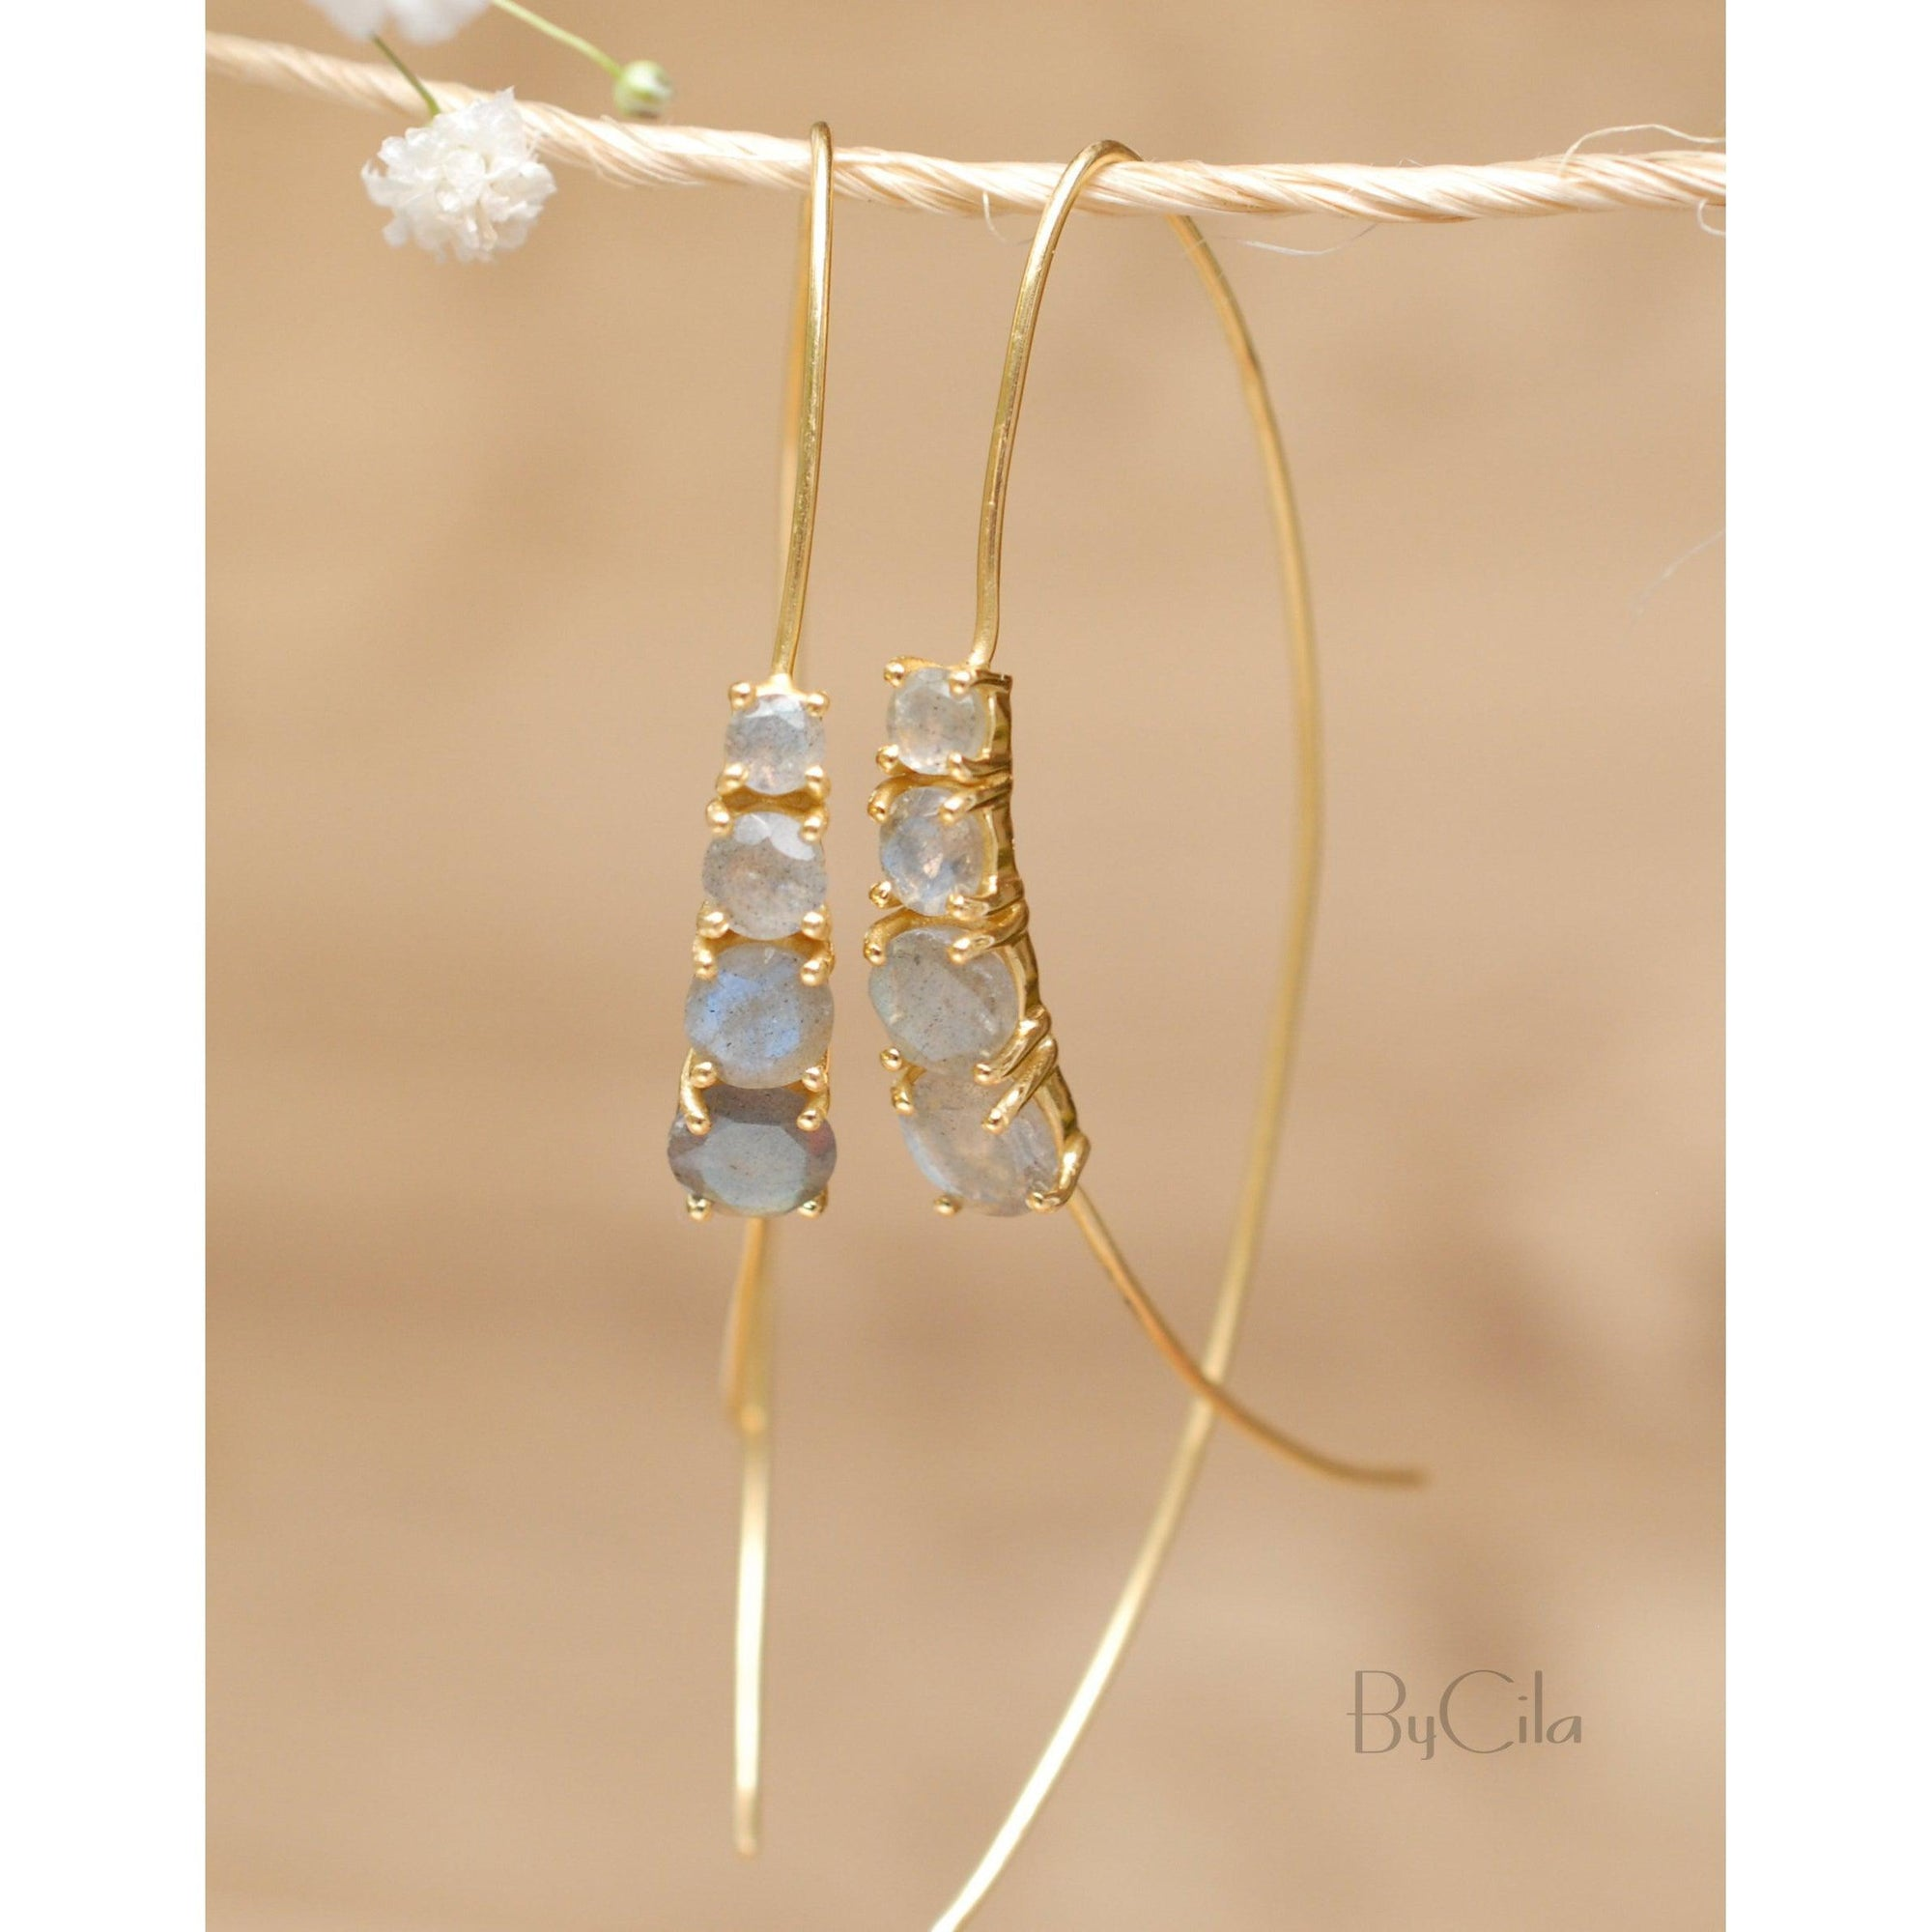 Aja Earrings - Labradorite-ByCila-Blue Hand Home